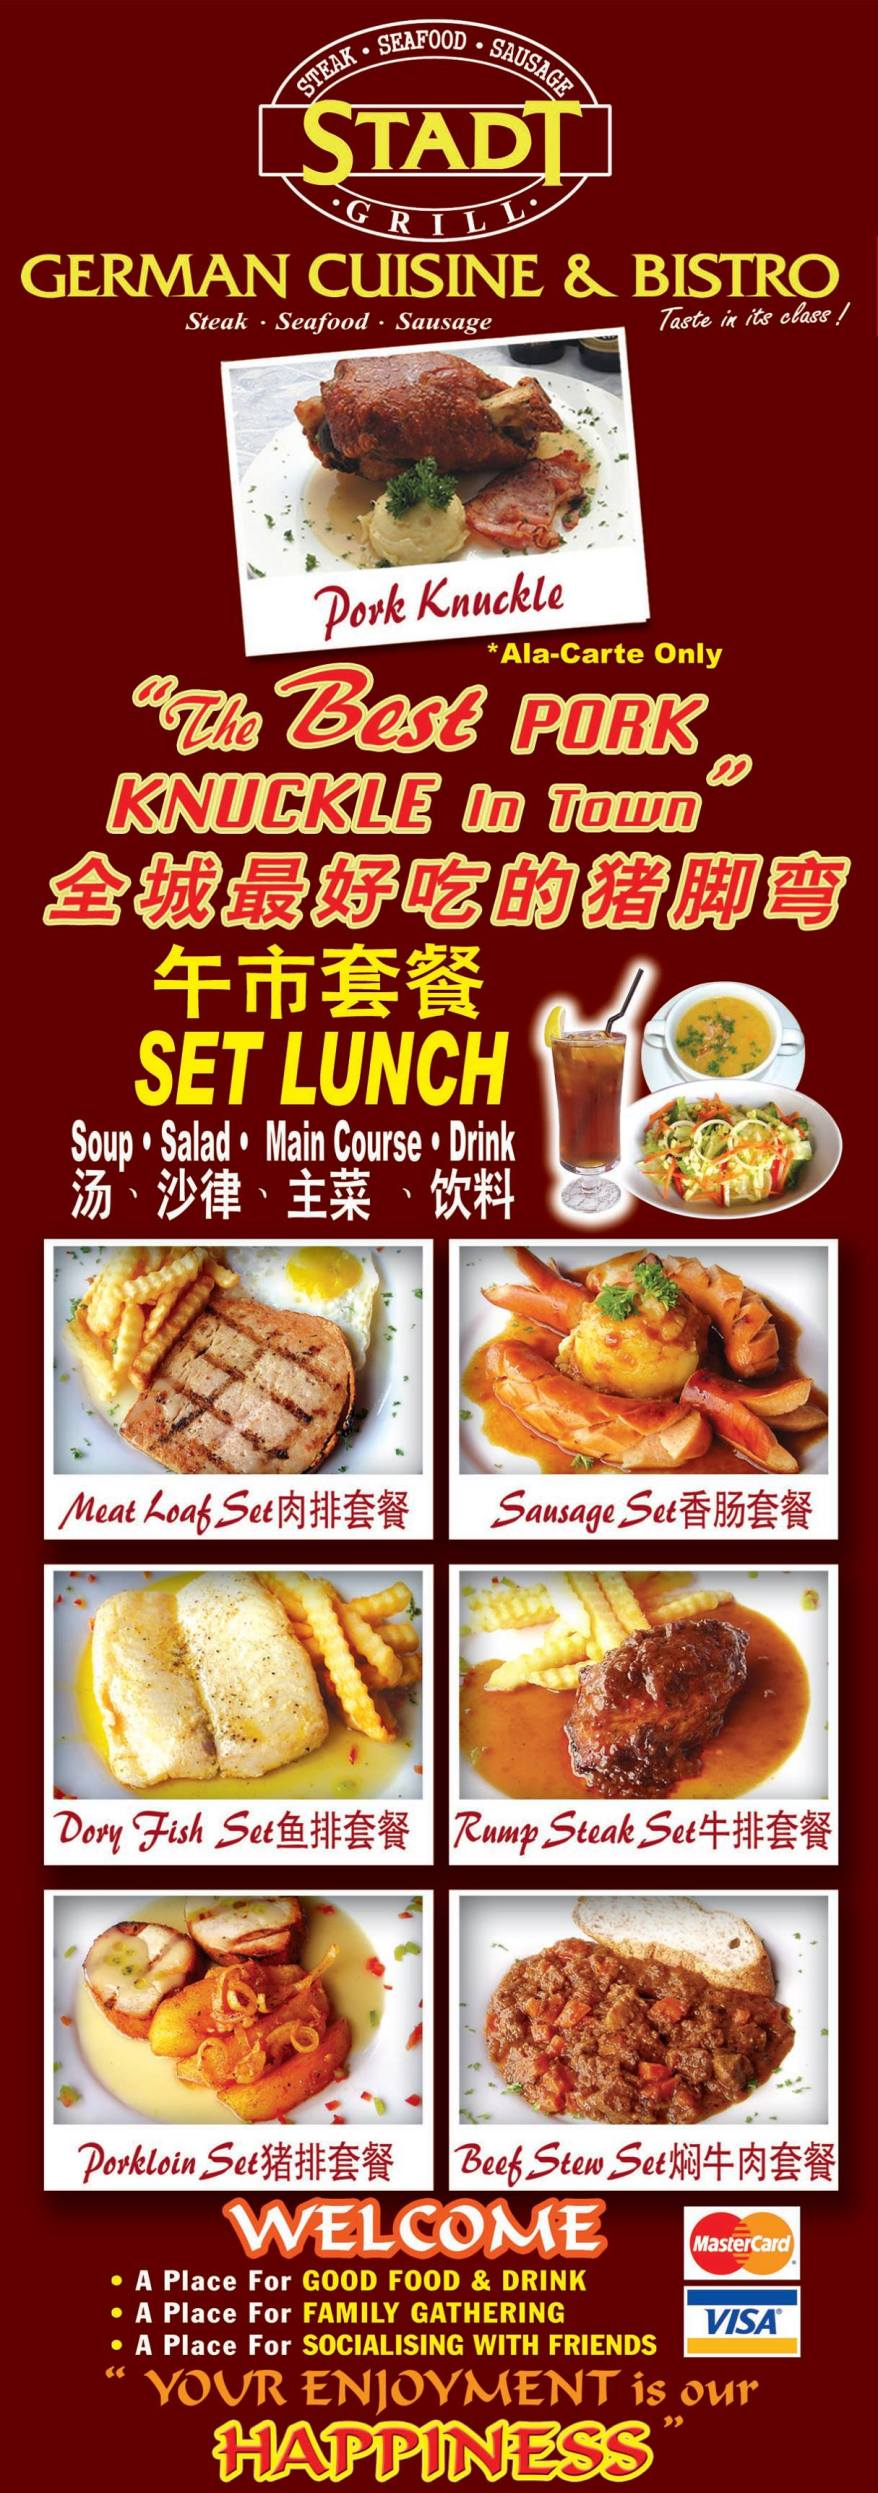 Stadt also has set lunches at RM14.90++ per set inclusive of Main Course, Potato Soup, Garden Salad, and Ice Lemon Tea and is available from 11.00am till 3.00pm.